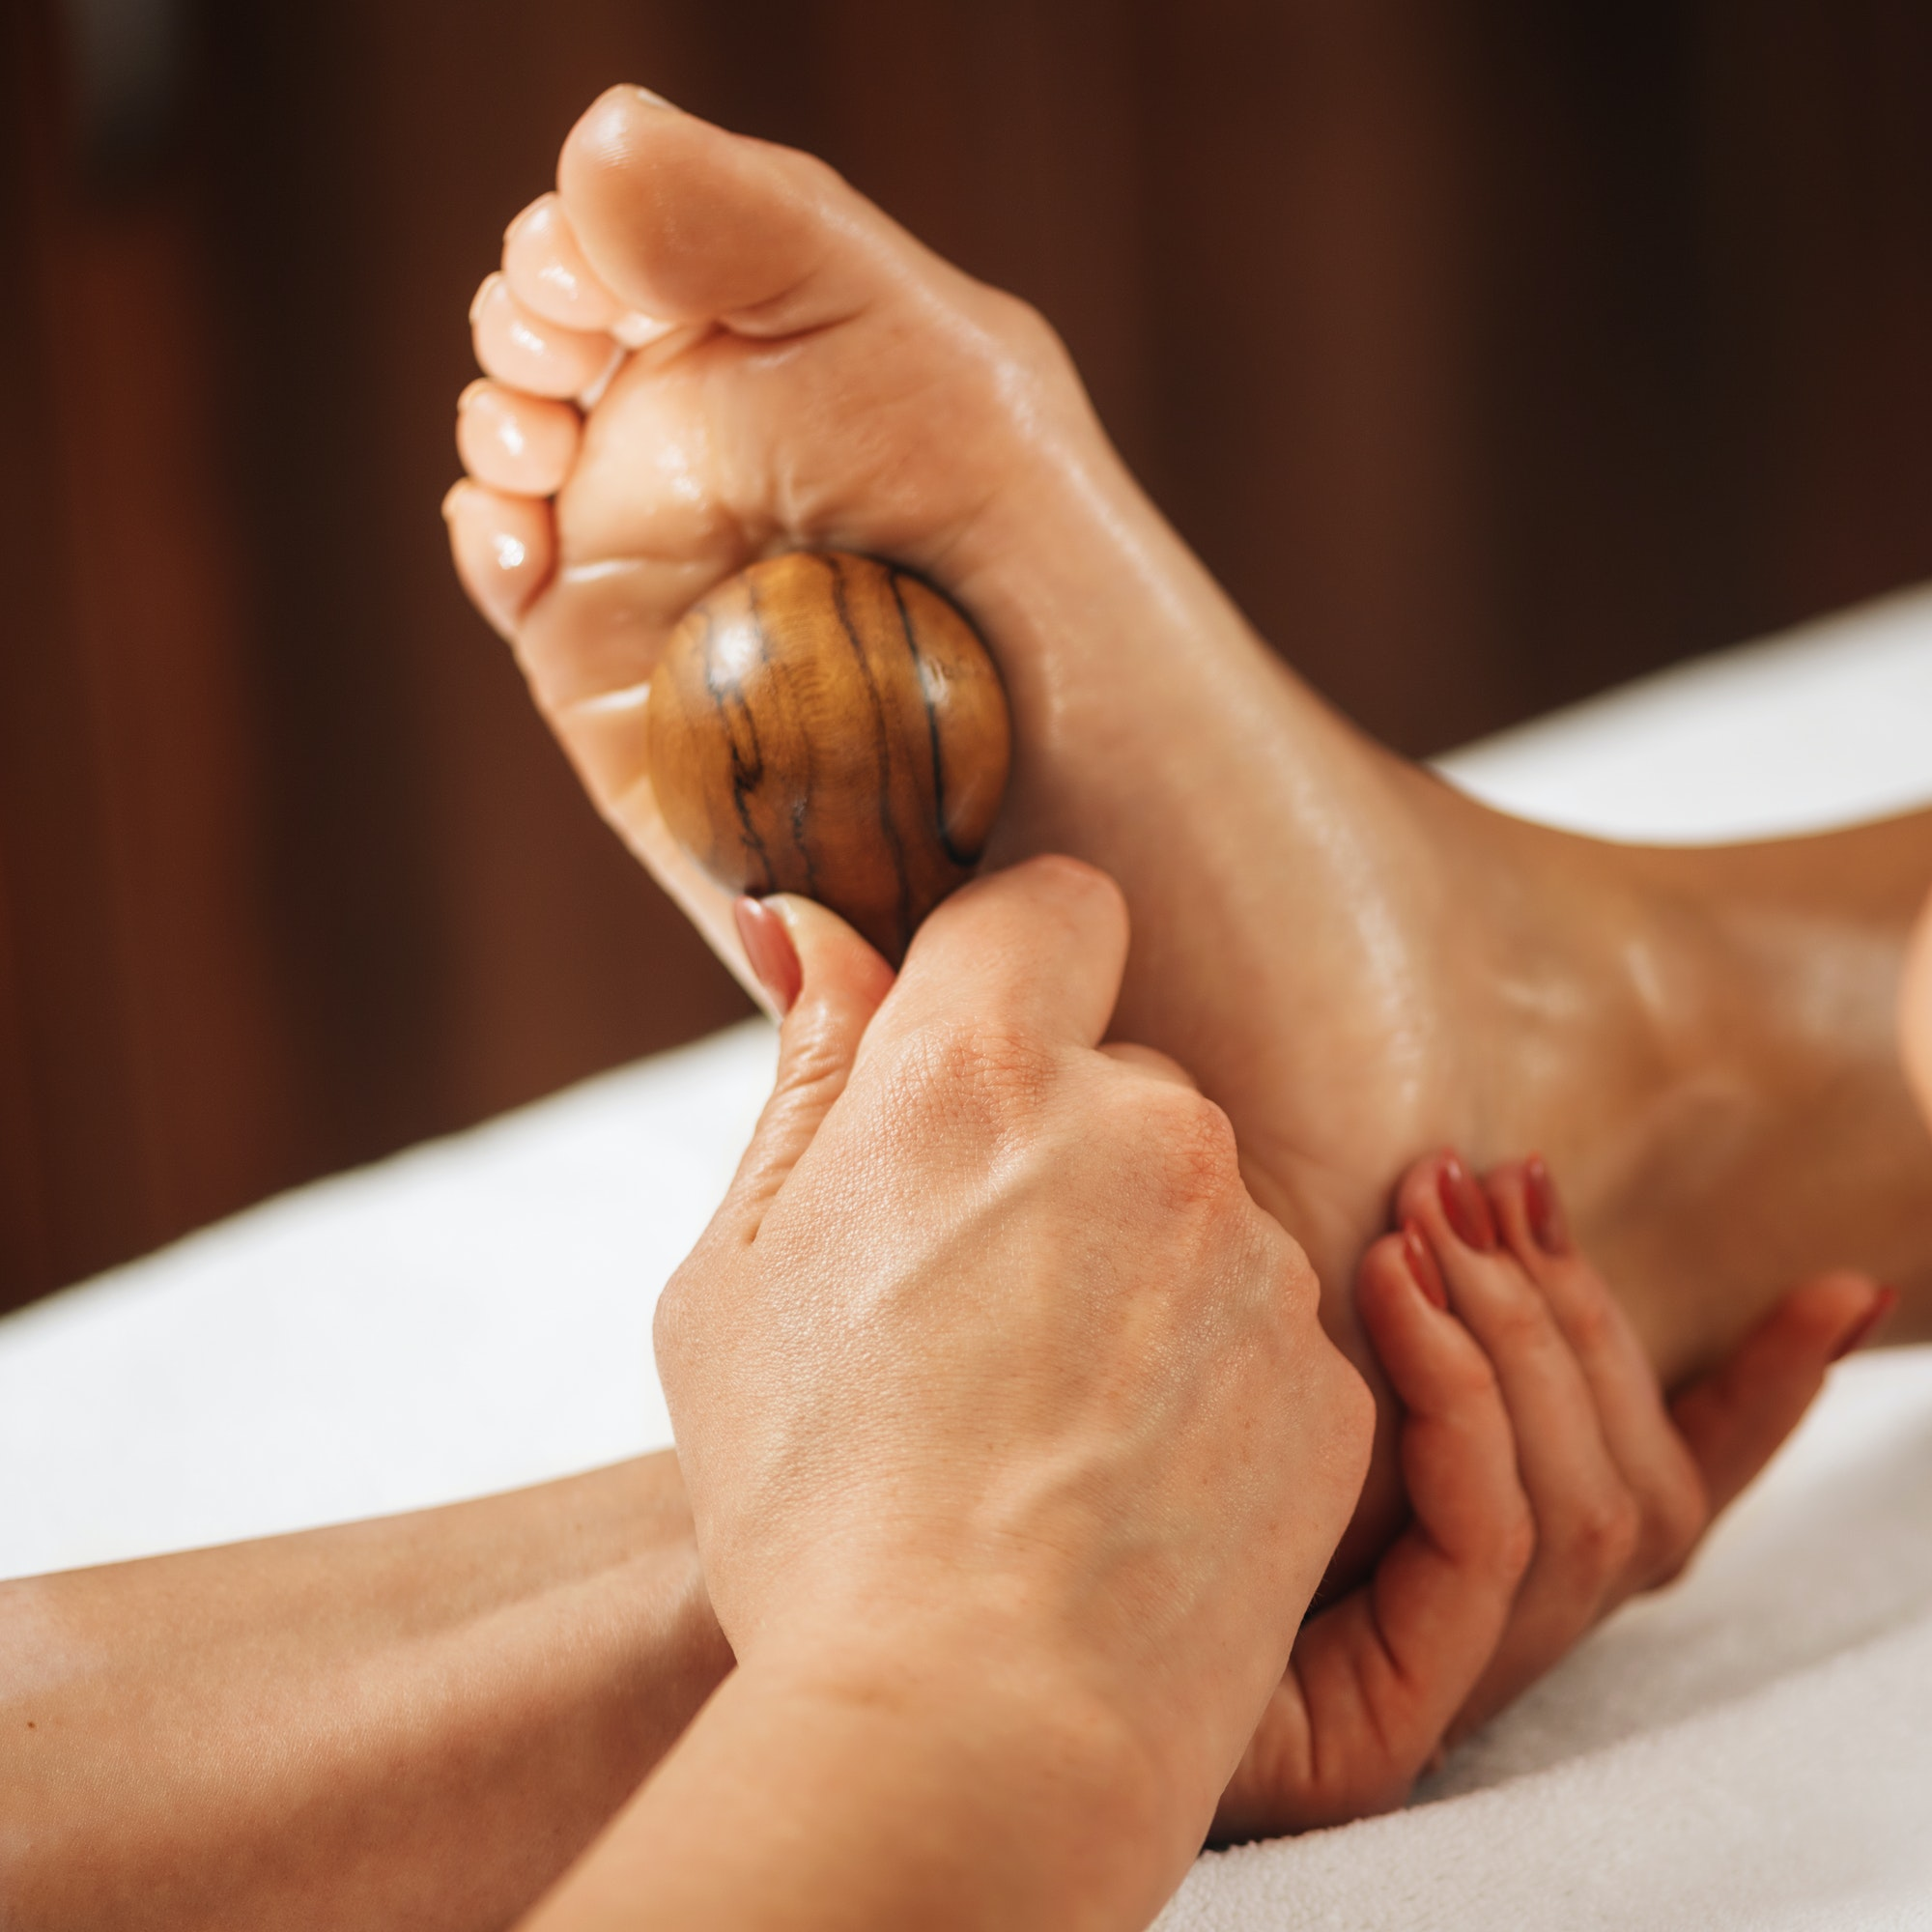 Reflexology - Foot Massage with Wooden Massage Tool.